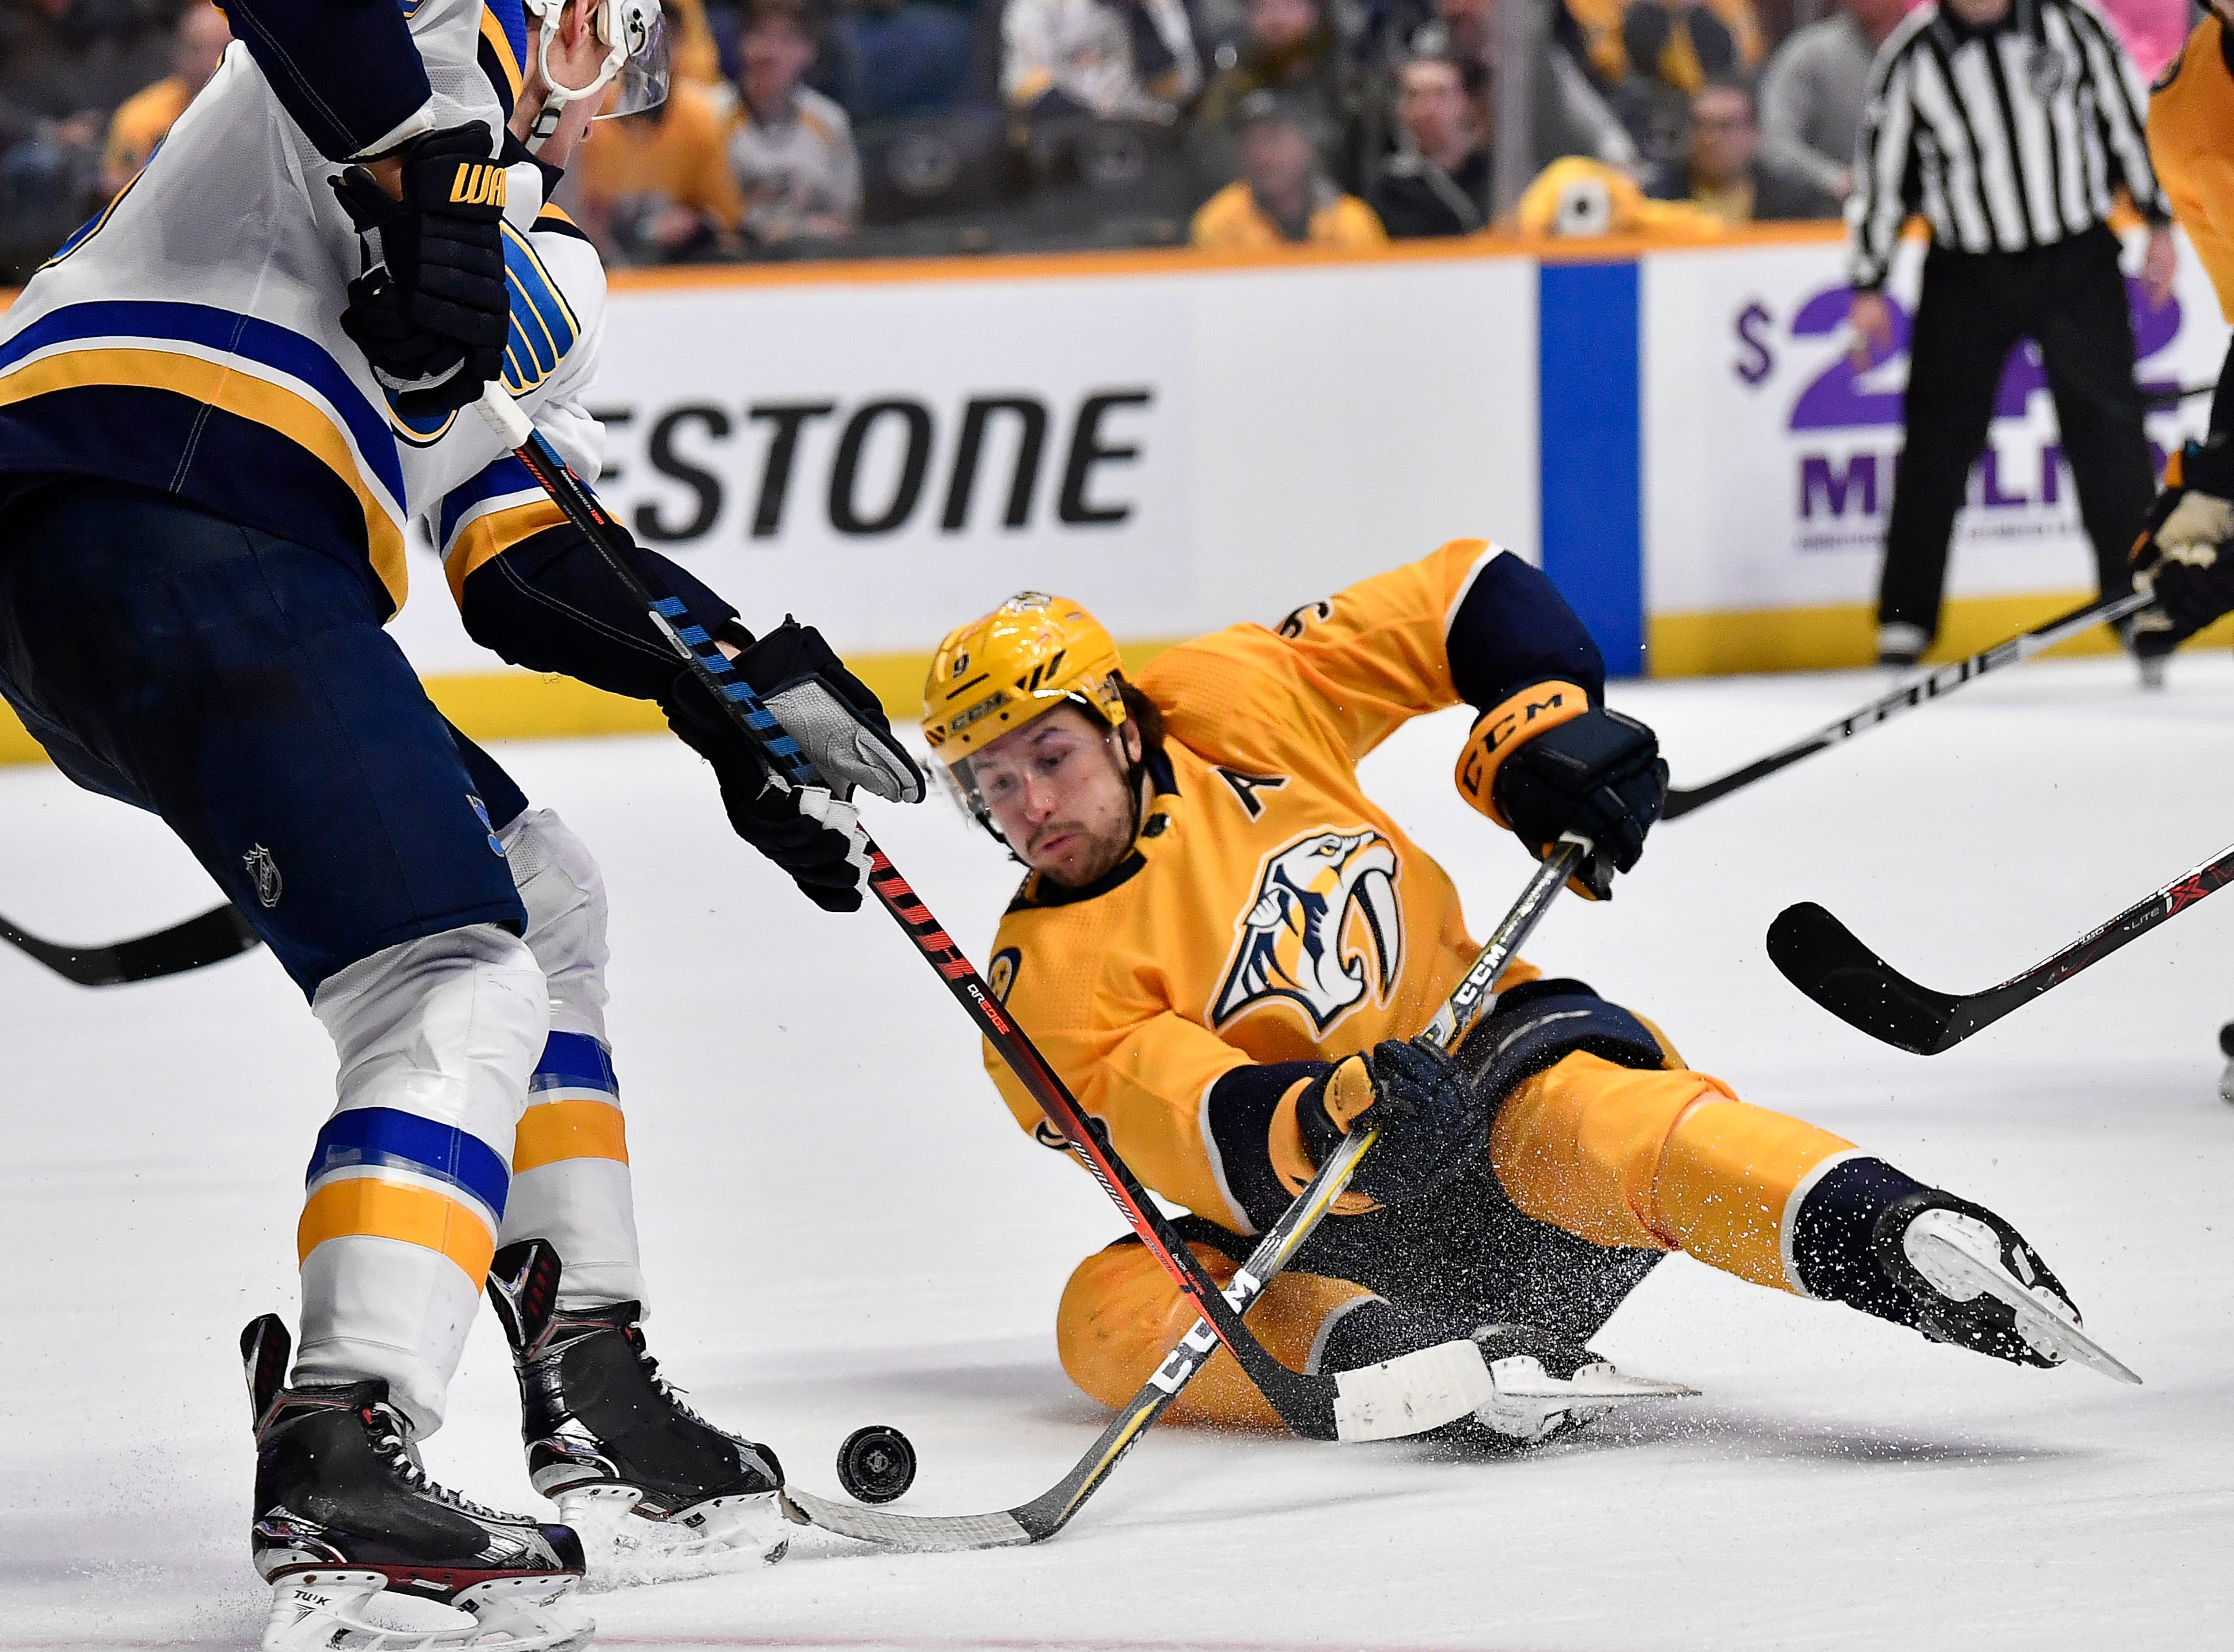 Predators left wing Filip Forsberg (9) shoots the puck past a Blues defender during the third period at Bridgestone Arena Sunday Feb. 10, 2019 in Nashville, Tenn.